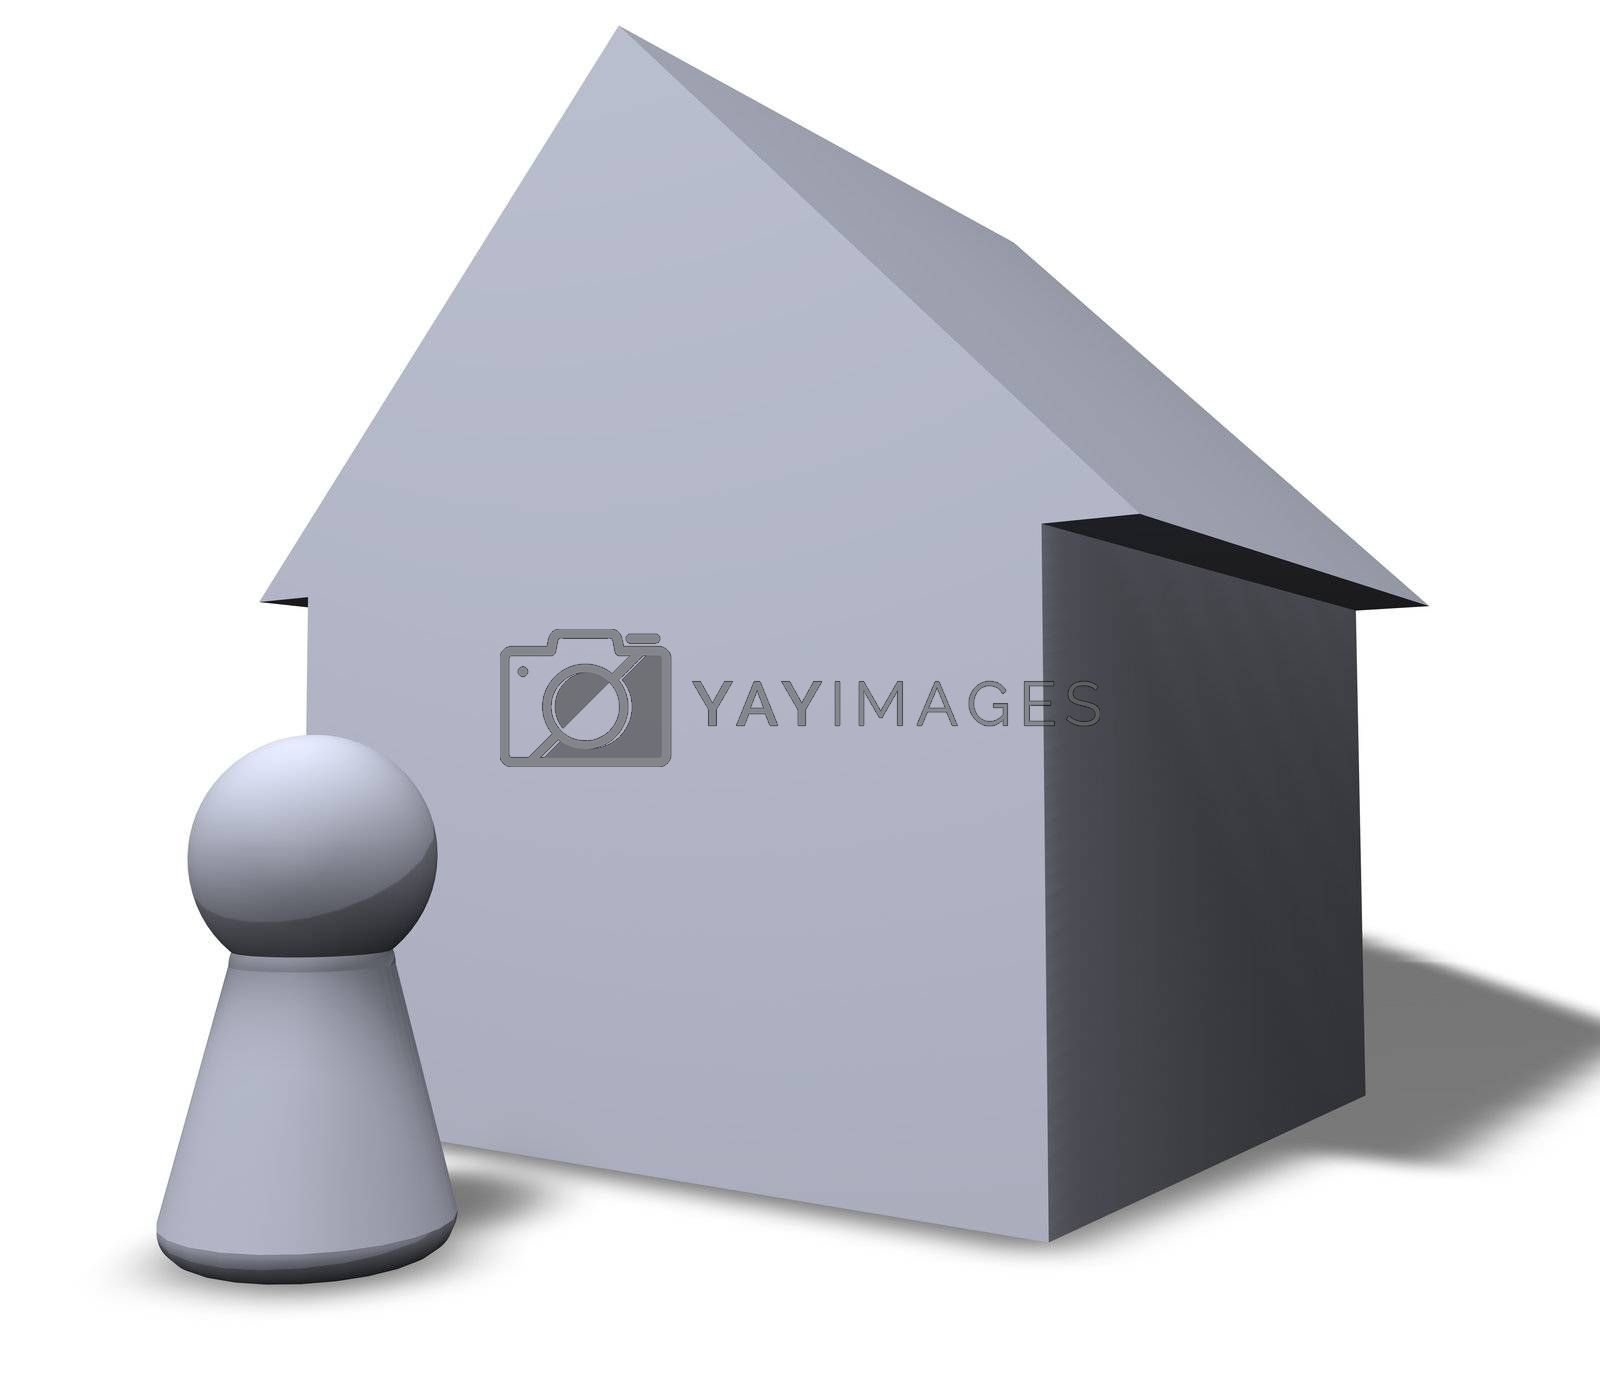 play figure and a house